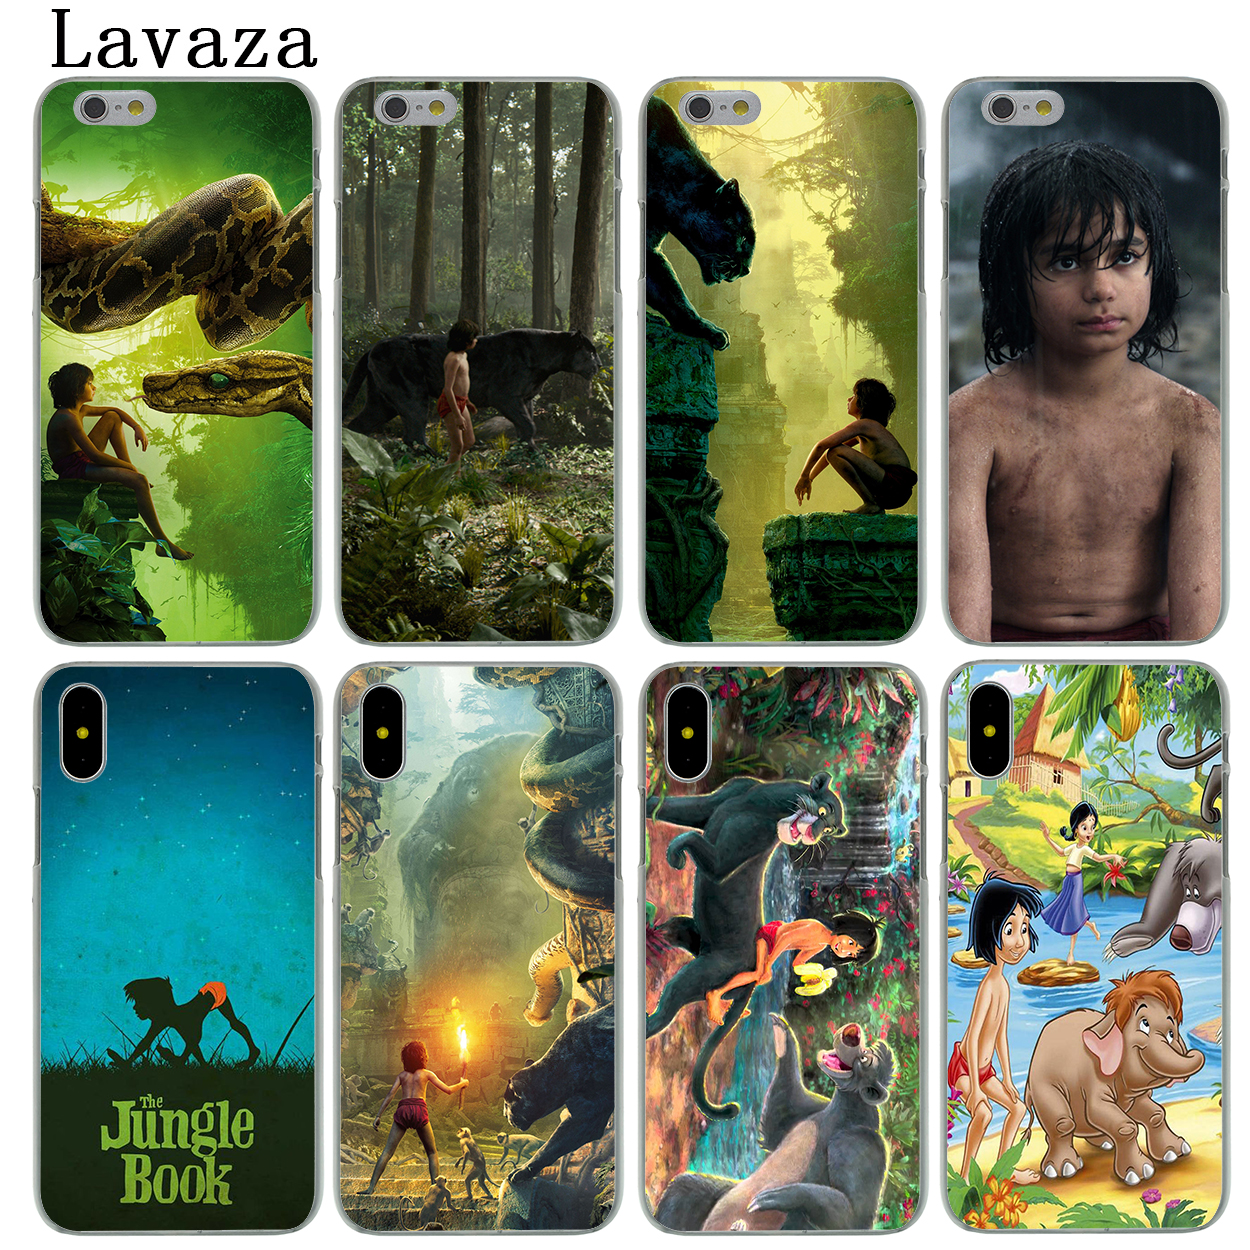 Lavaza The Jungle Book Hard Fashion Phone Skin Shell Case for Apple iPhone X 10 8 7 6 6S Plus 5 5S SE 5C 4 4S Cover